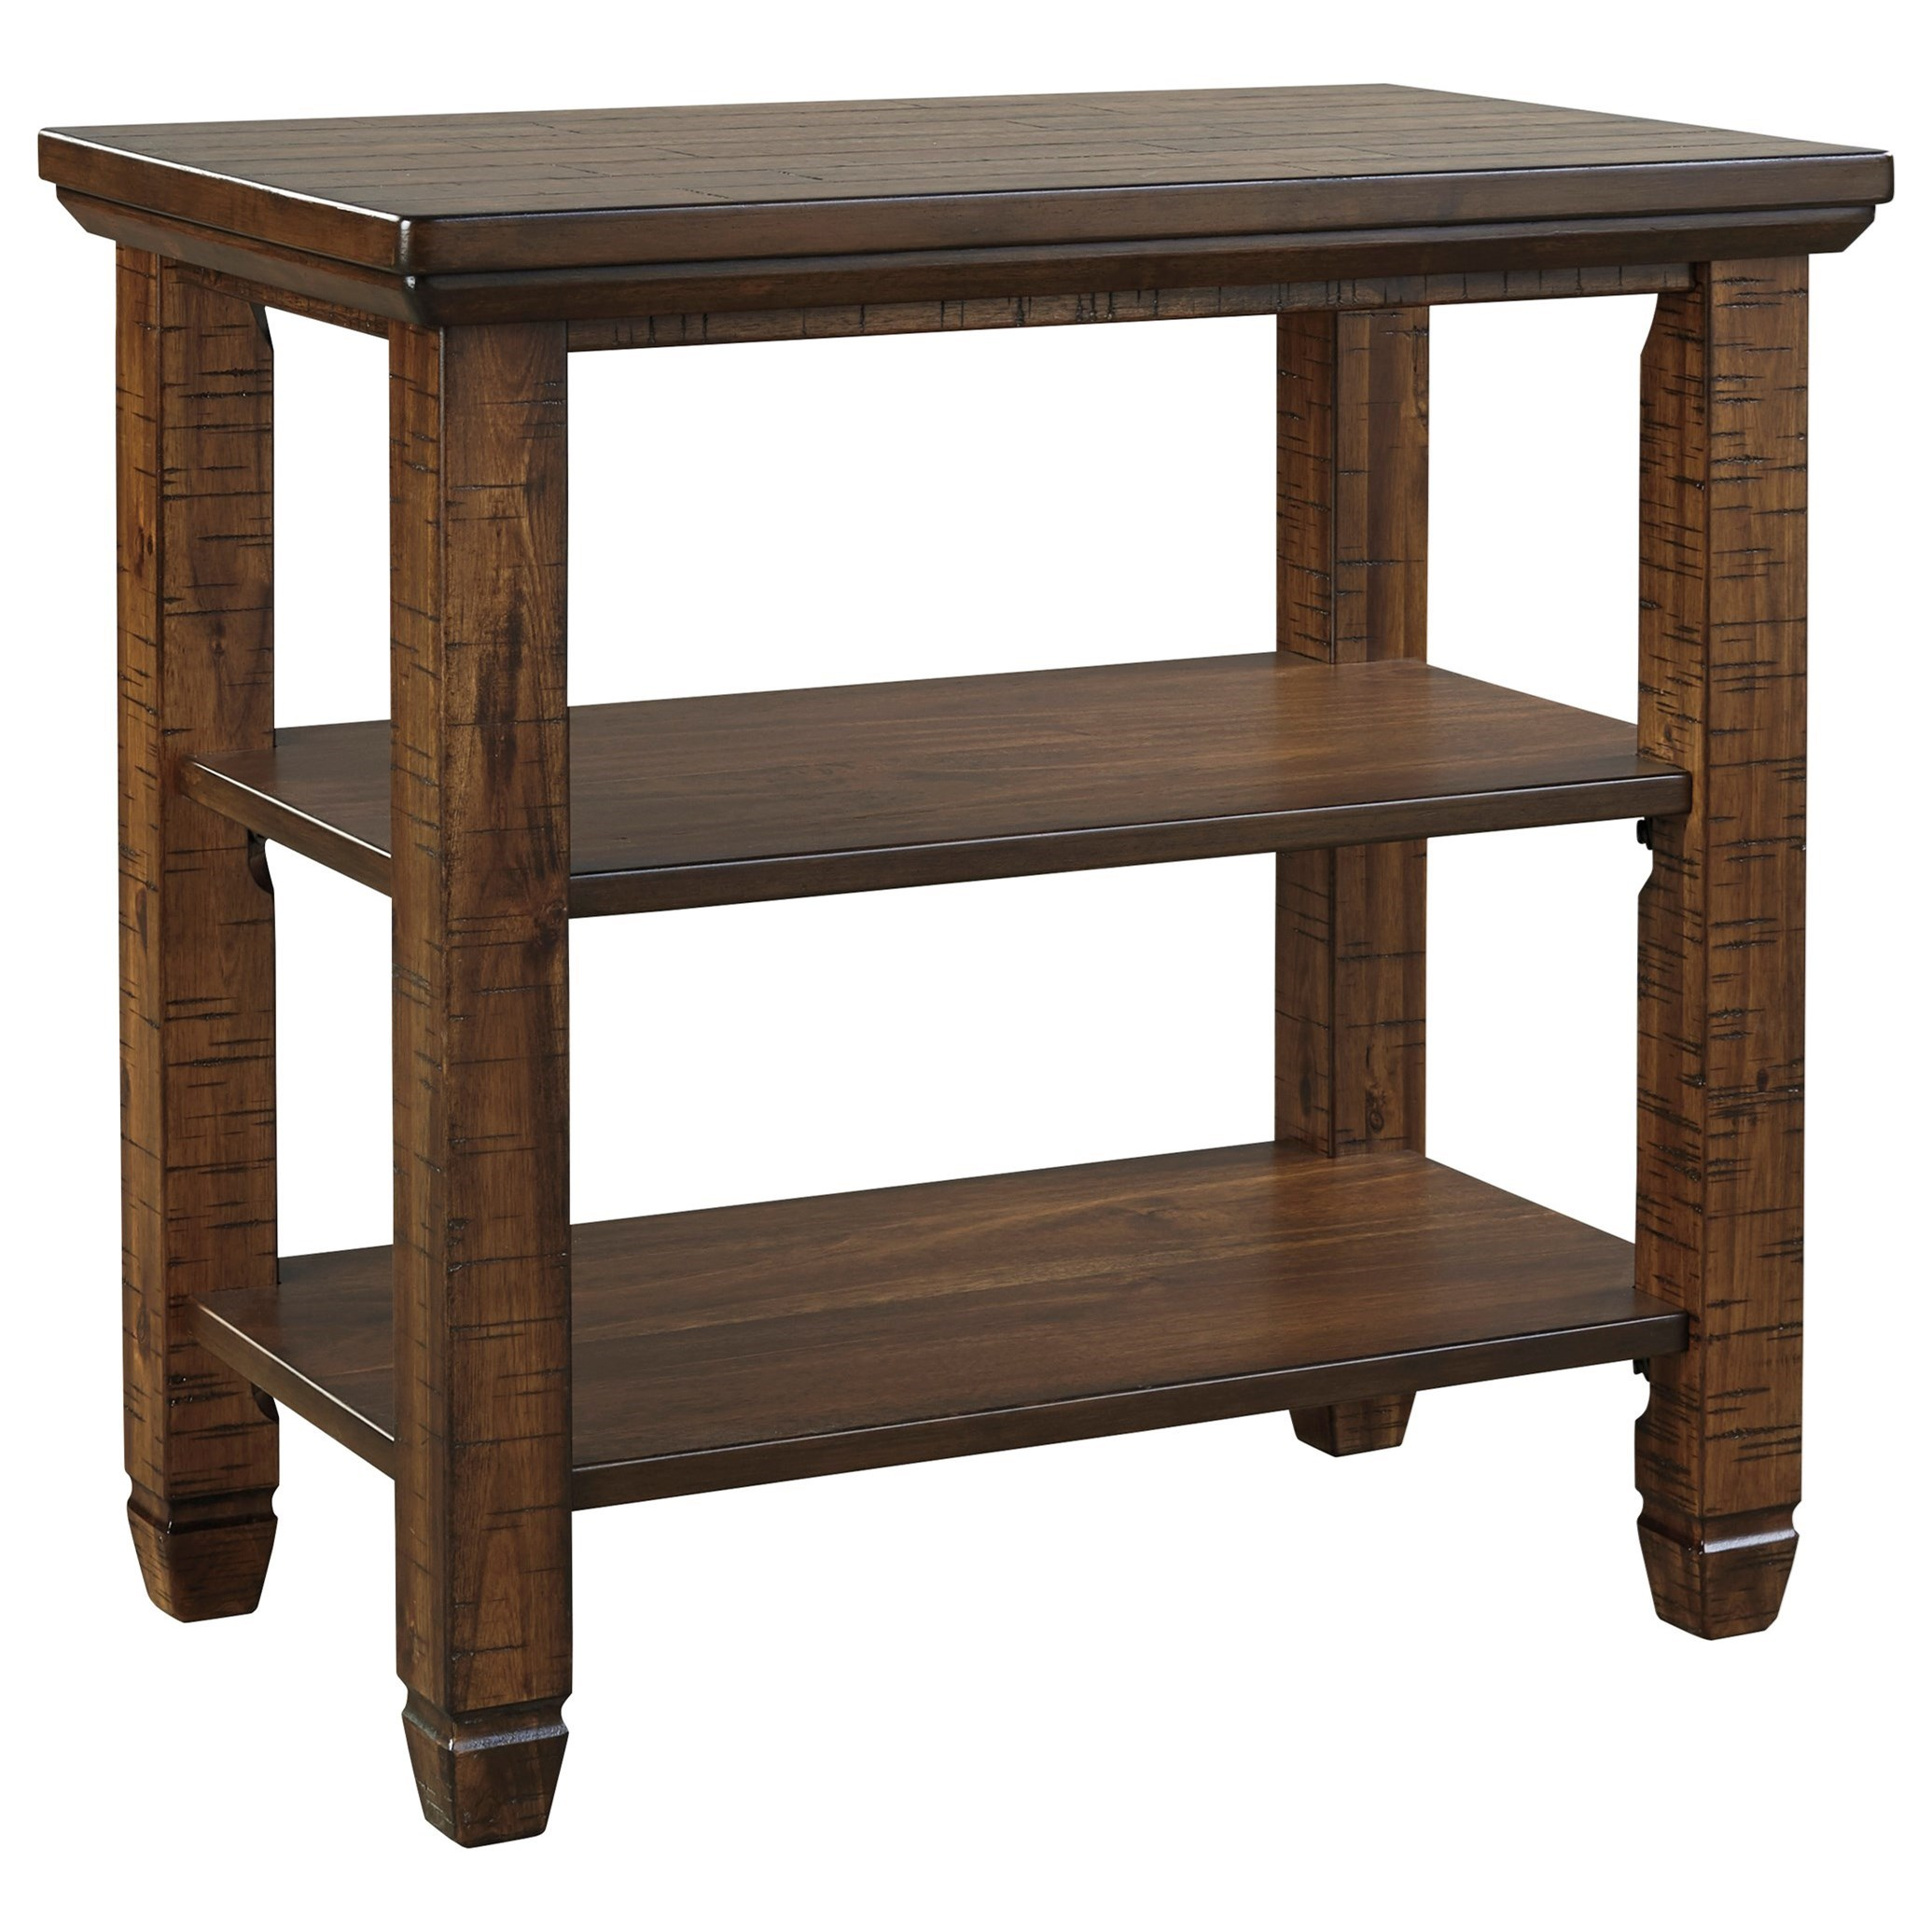 rustic chairside end table signature design ashley wolf products color royard furniture tables glass toronto wayside medina what acme medium oak ideas for brown leather carved